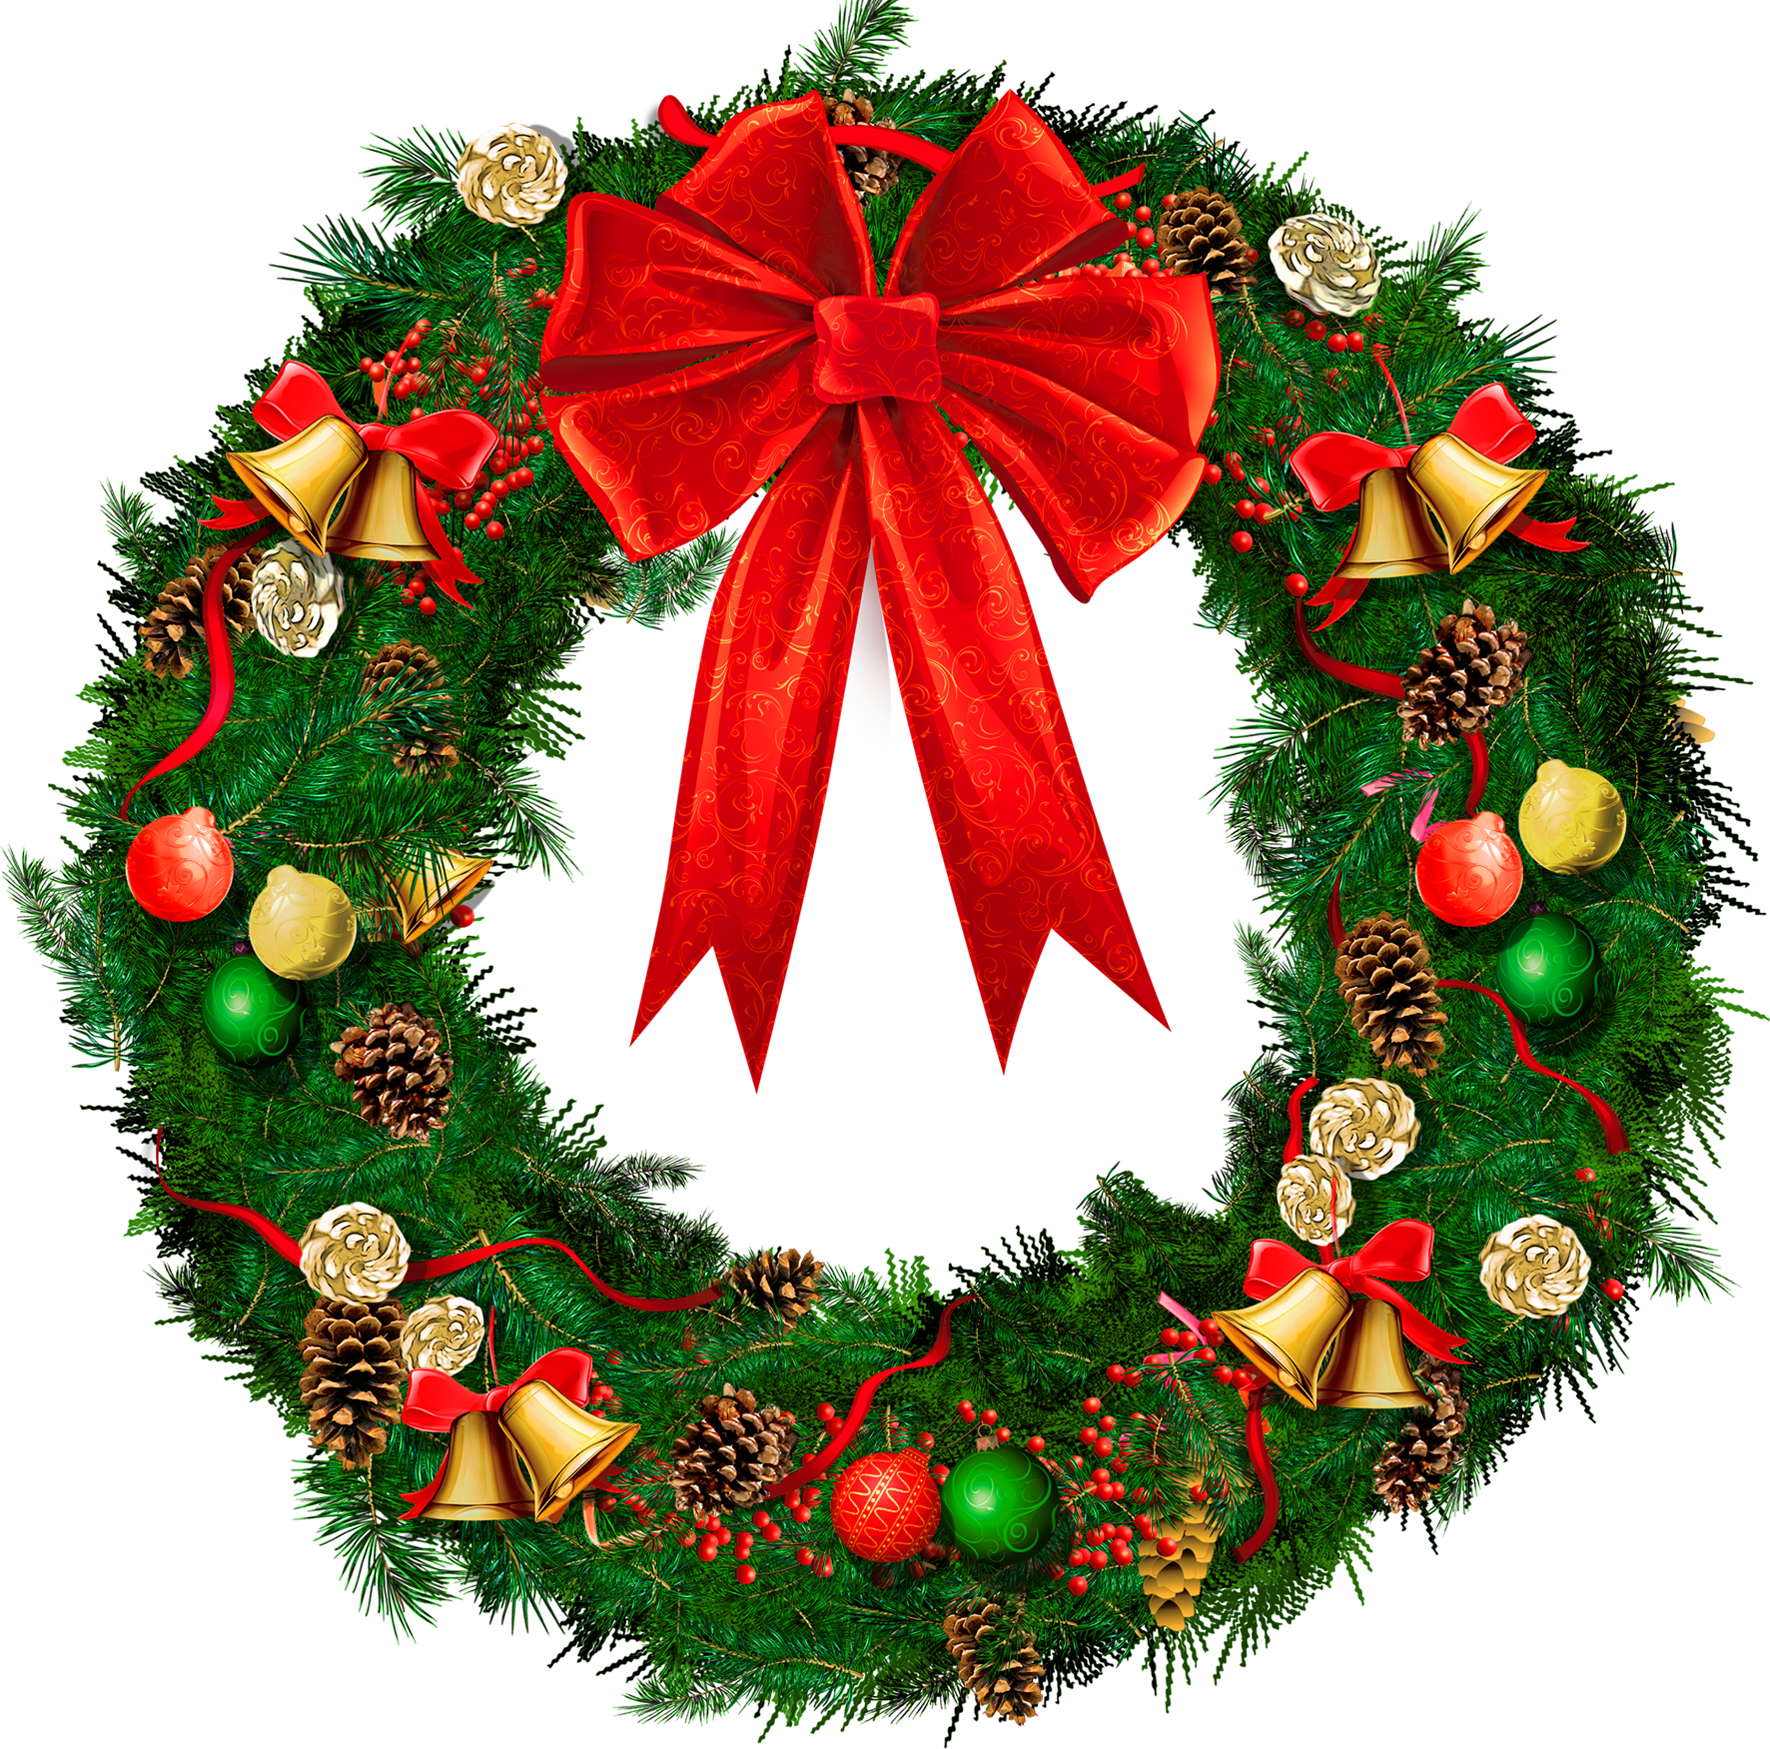 Xmas Wreath Clipart.